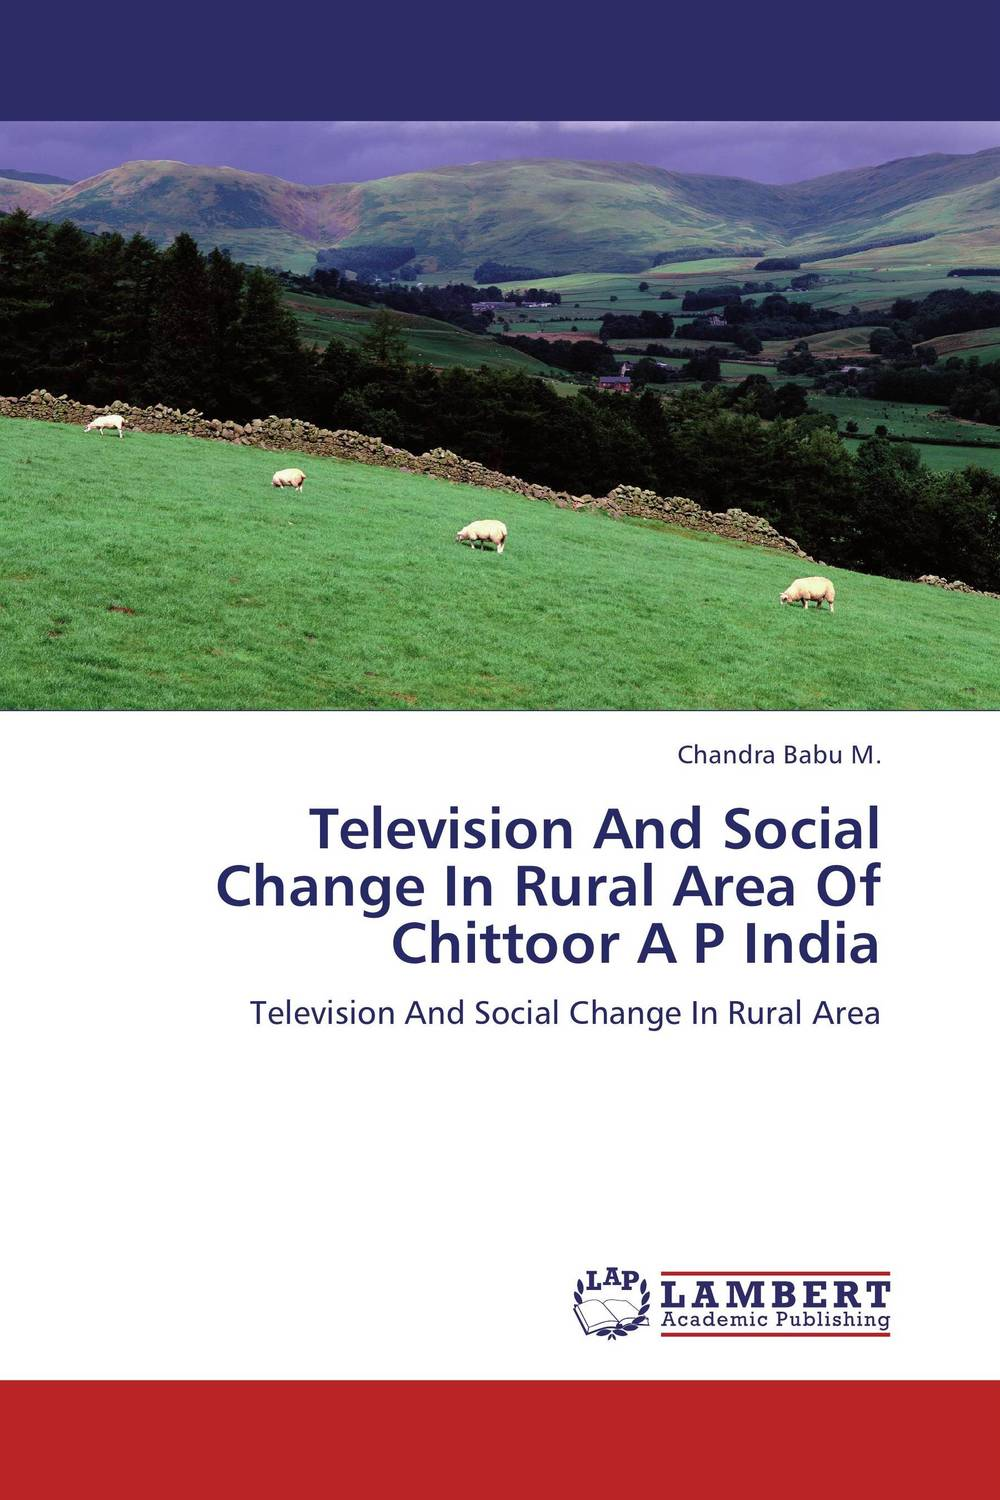 Television And Social Change In Rural Area Of Chittoor A P India bender community and social change in america